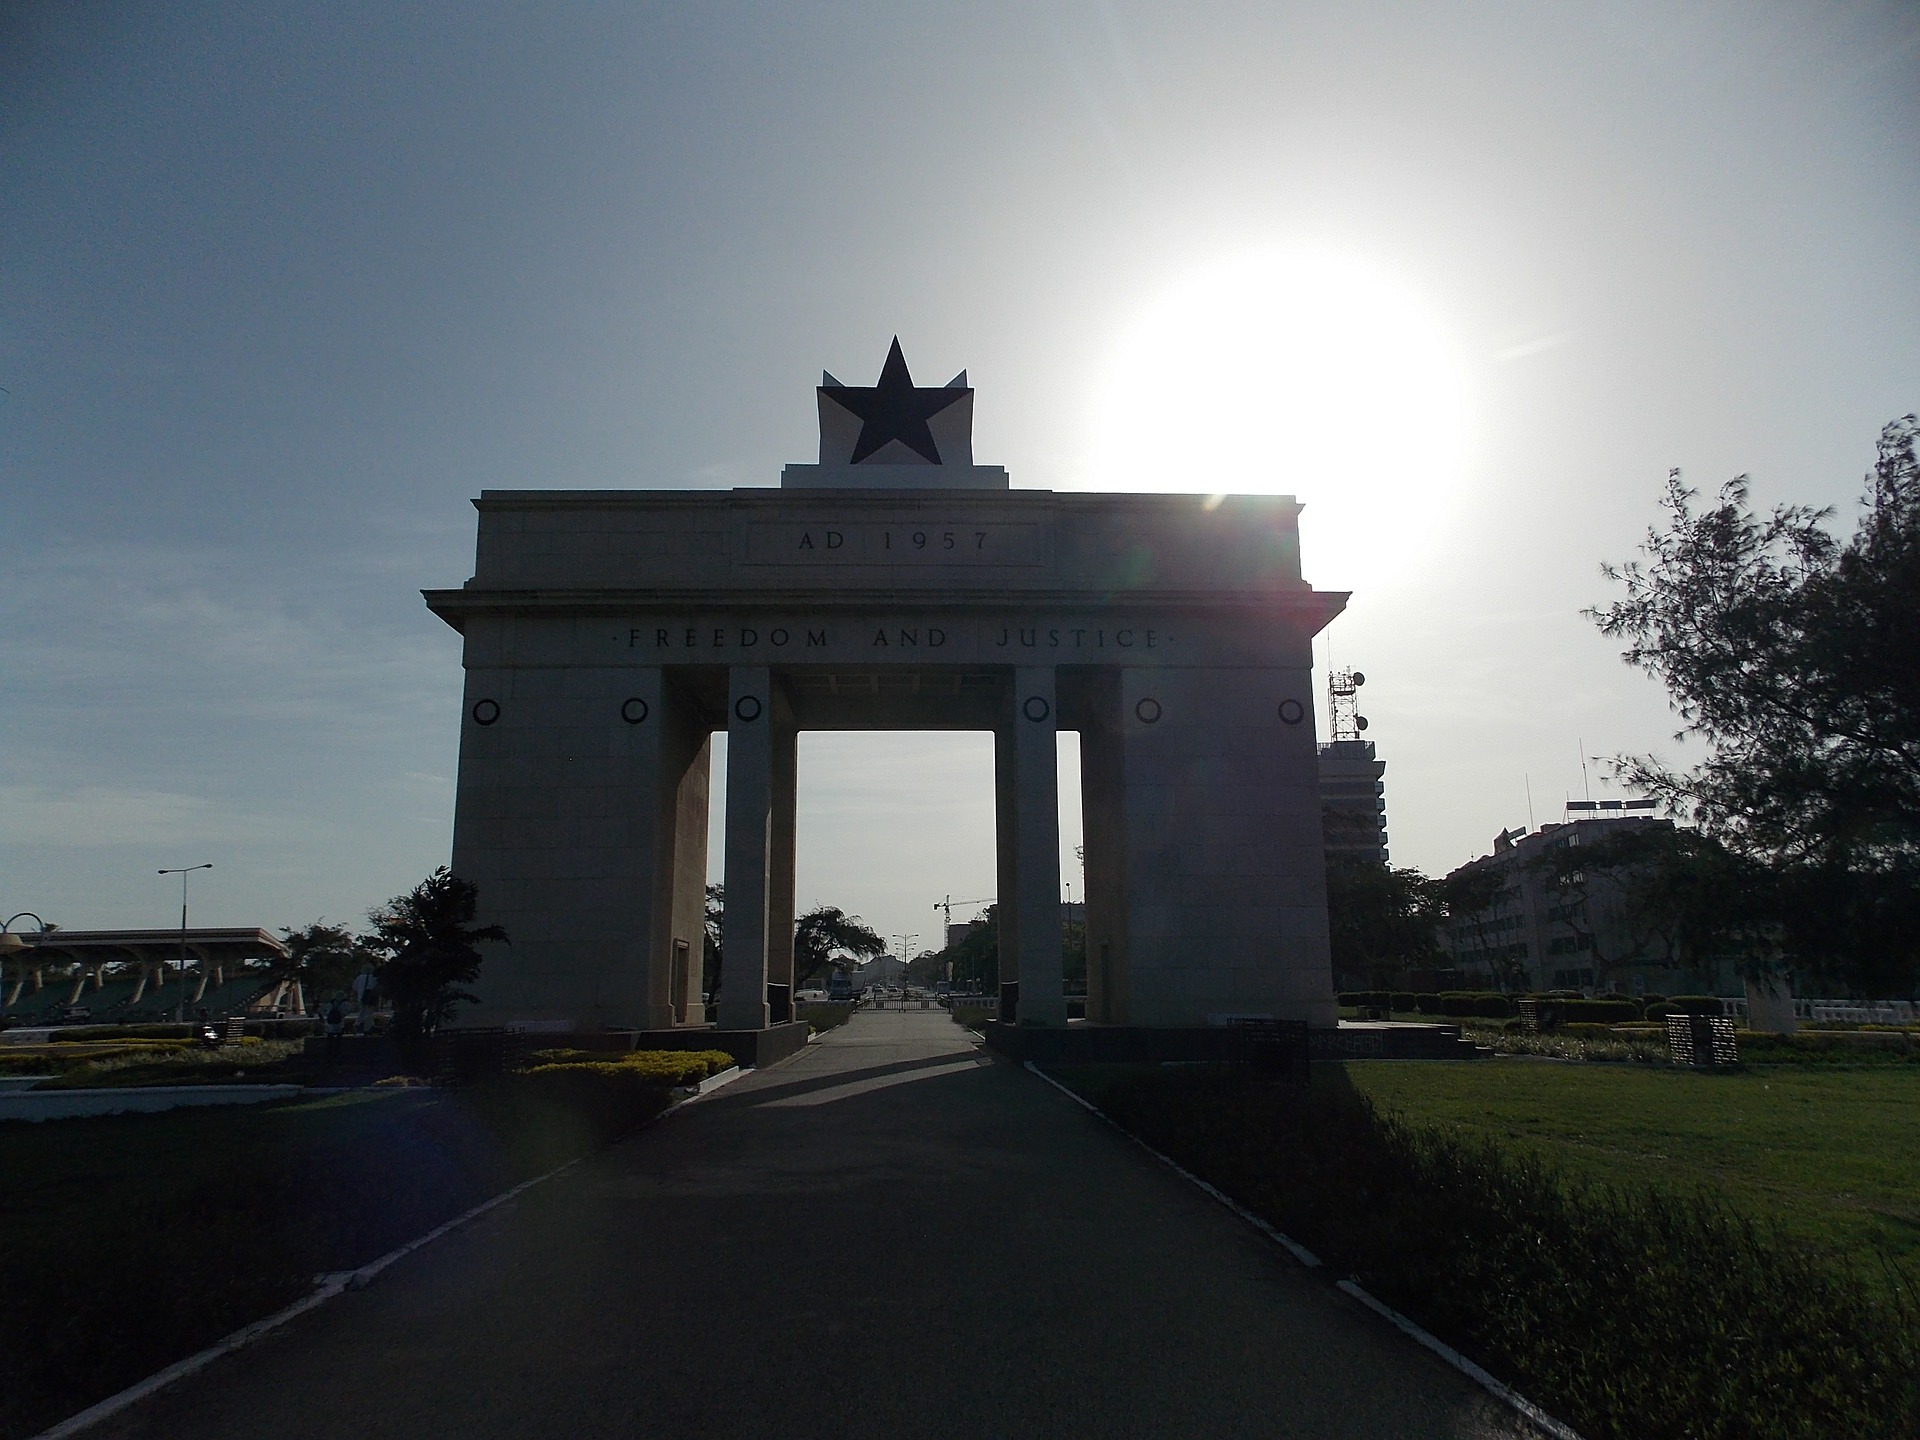 Ghana's Independence Arch in the capital Accra.